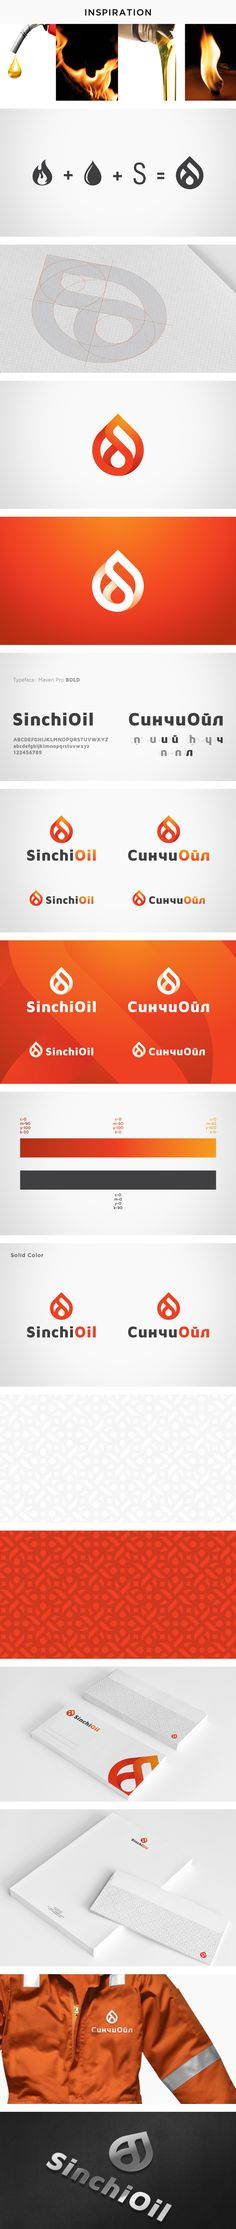 Sinchioil Visual Identity. Very clever, simple, and clean design. Love the pattern that the logo creates.